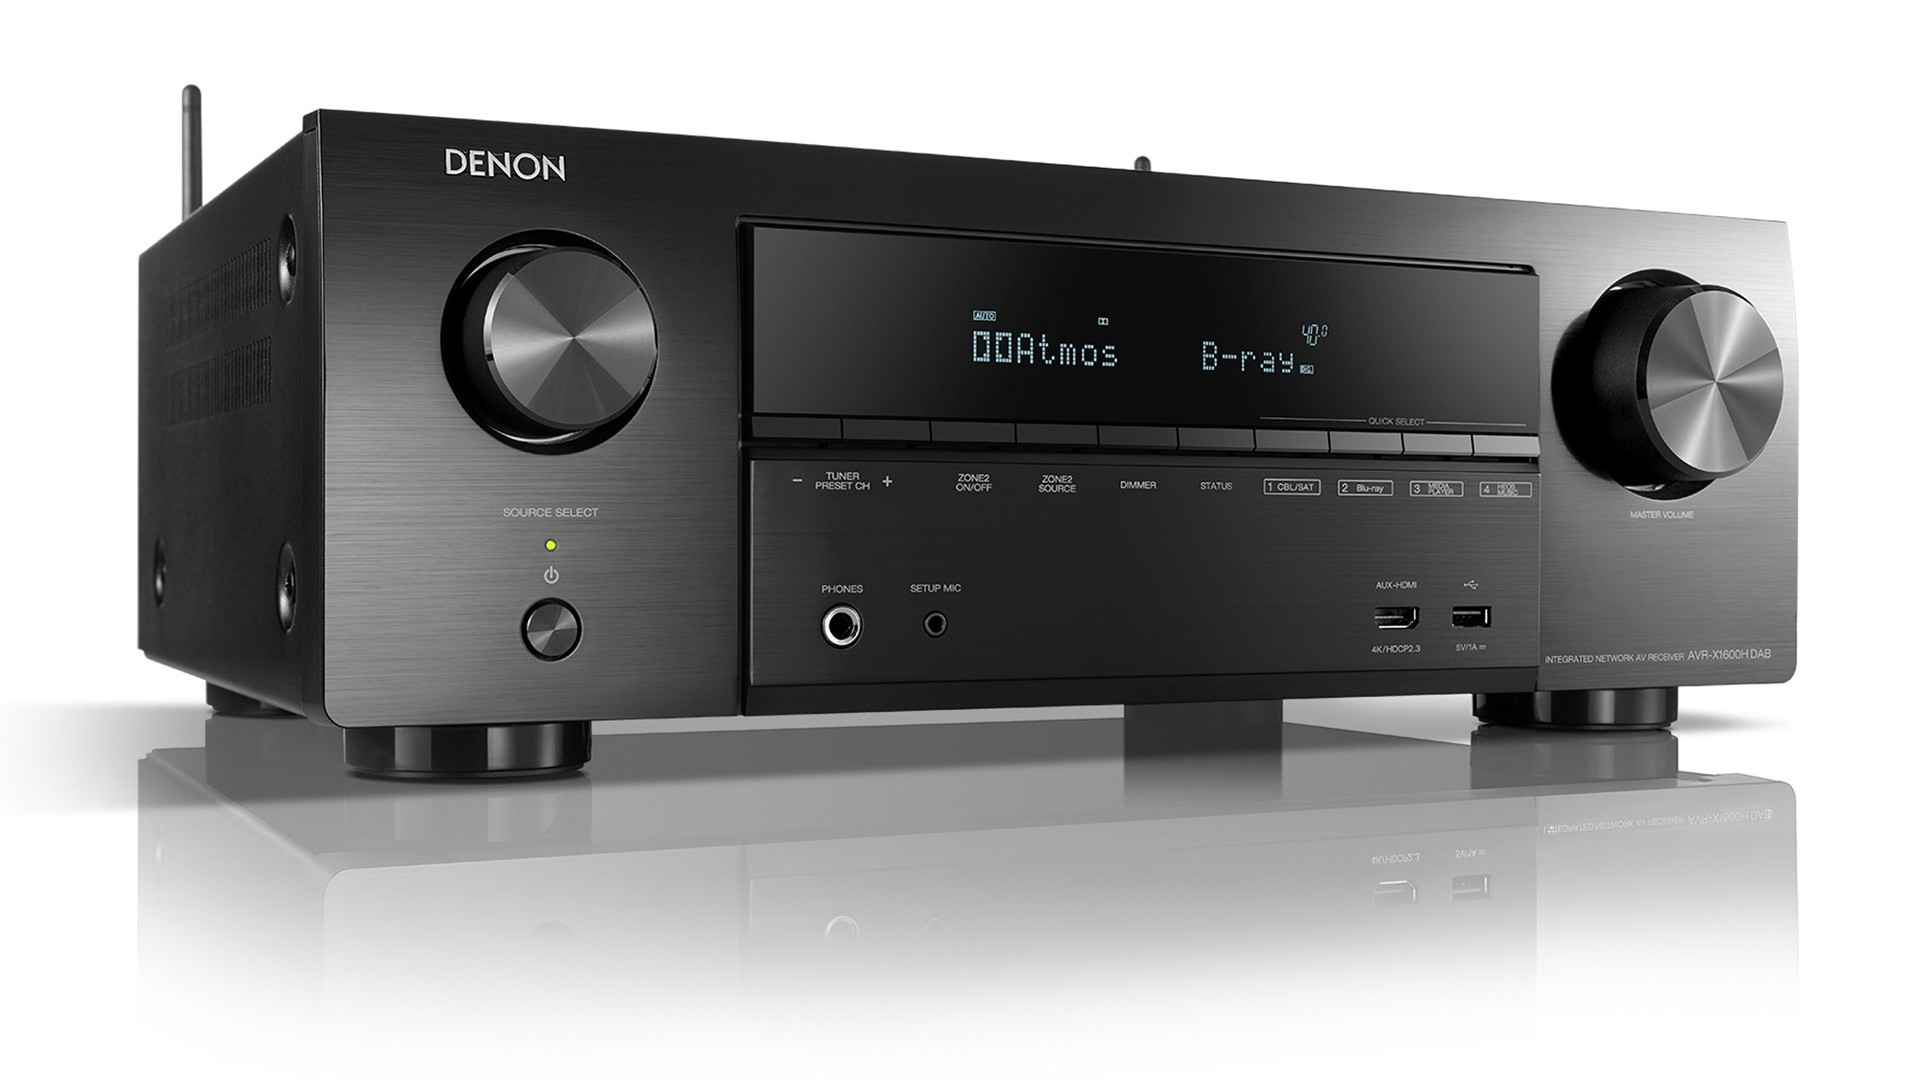 Denon AVR-X1600H DAB Black 7.2ch 4K Ultra HD AV Receiver with 3D Audio and HEOS Built-in